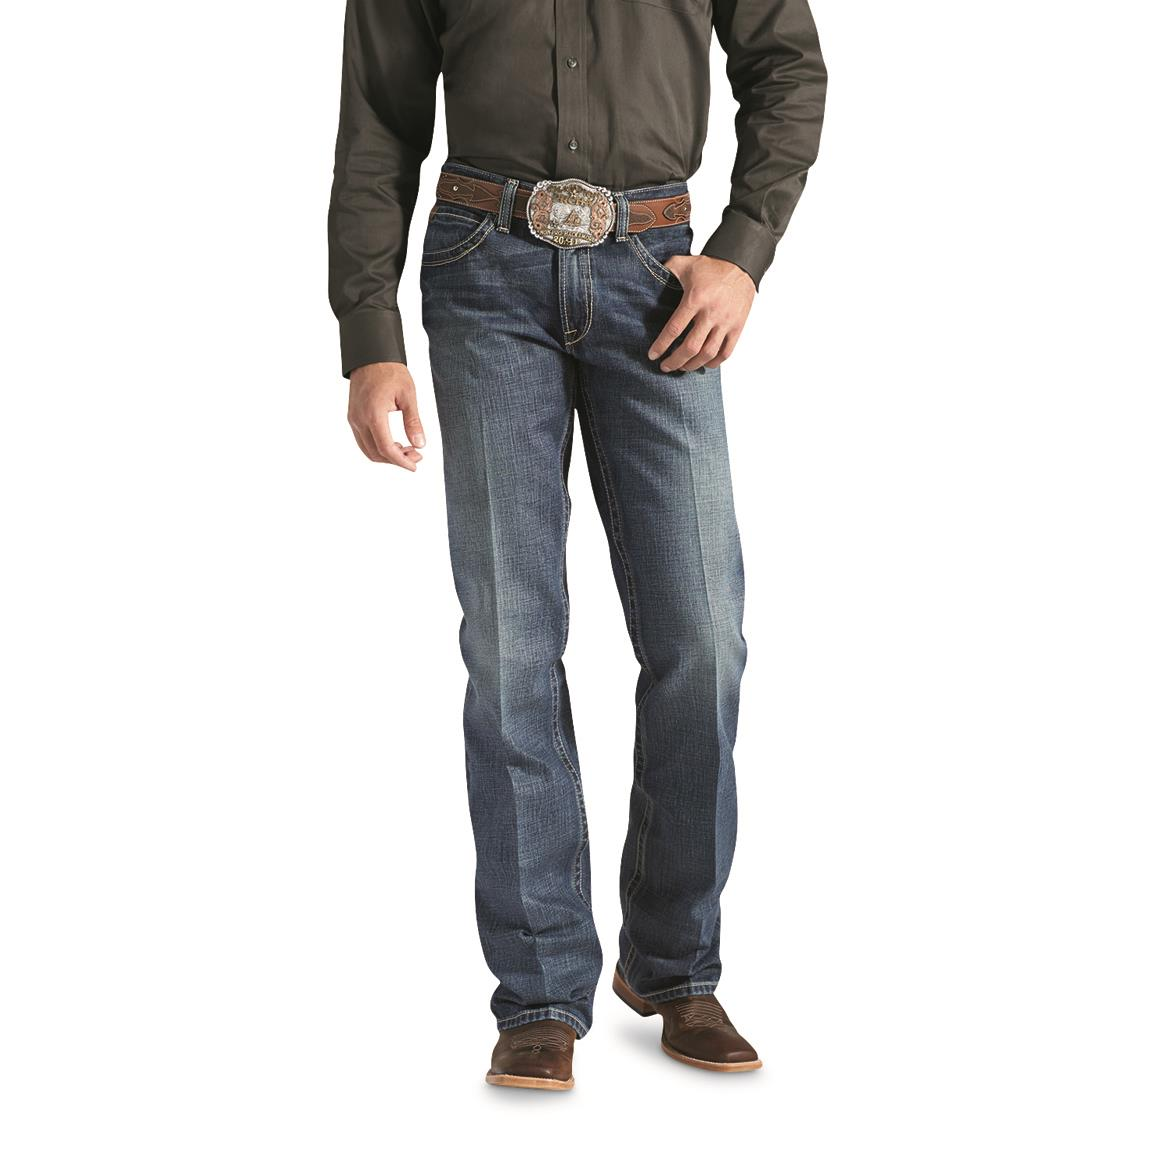 Ariat Men's M4 Low Rise Bootcut Jeans, Gulch